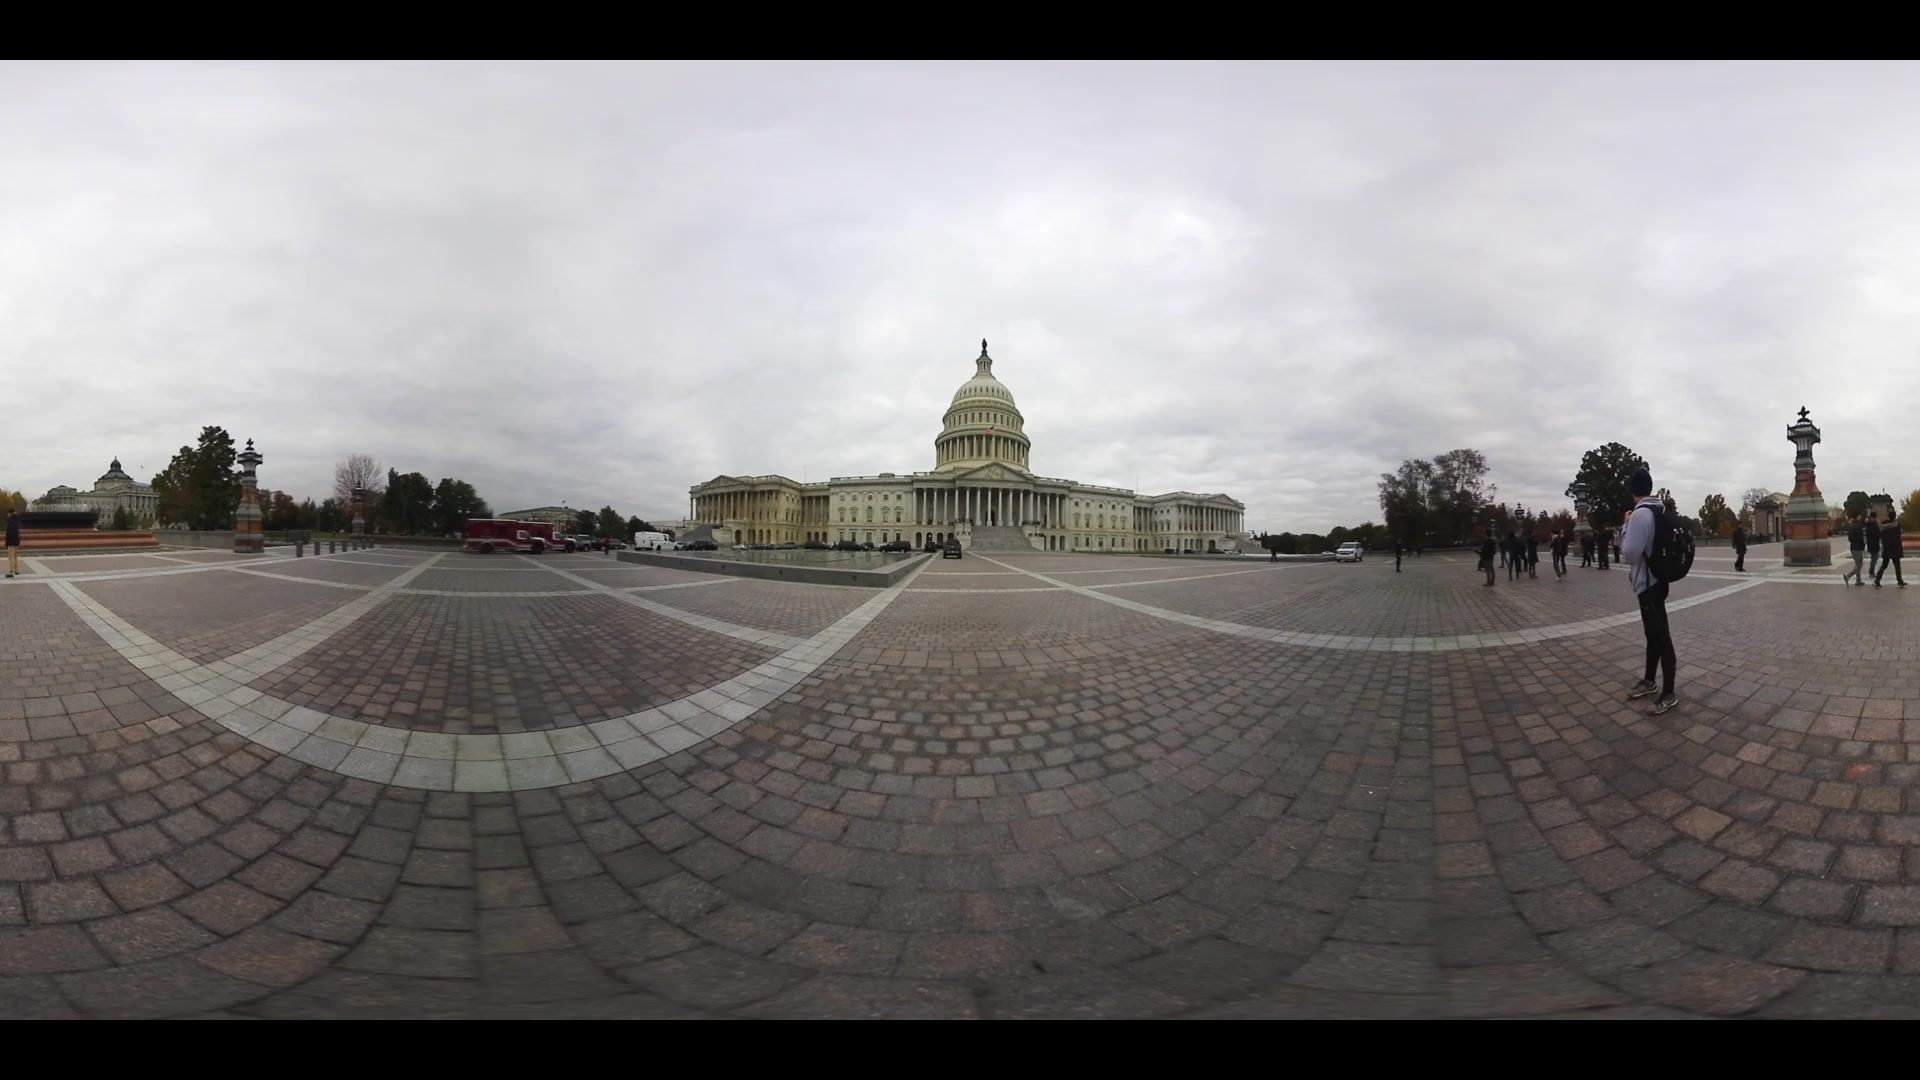 360 VR United States Capitol Building and Congress